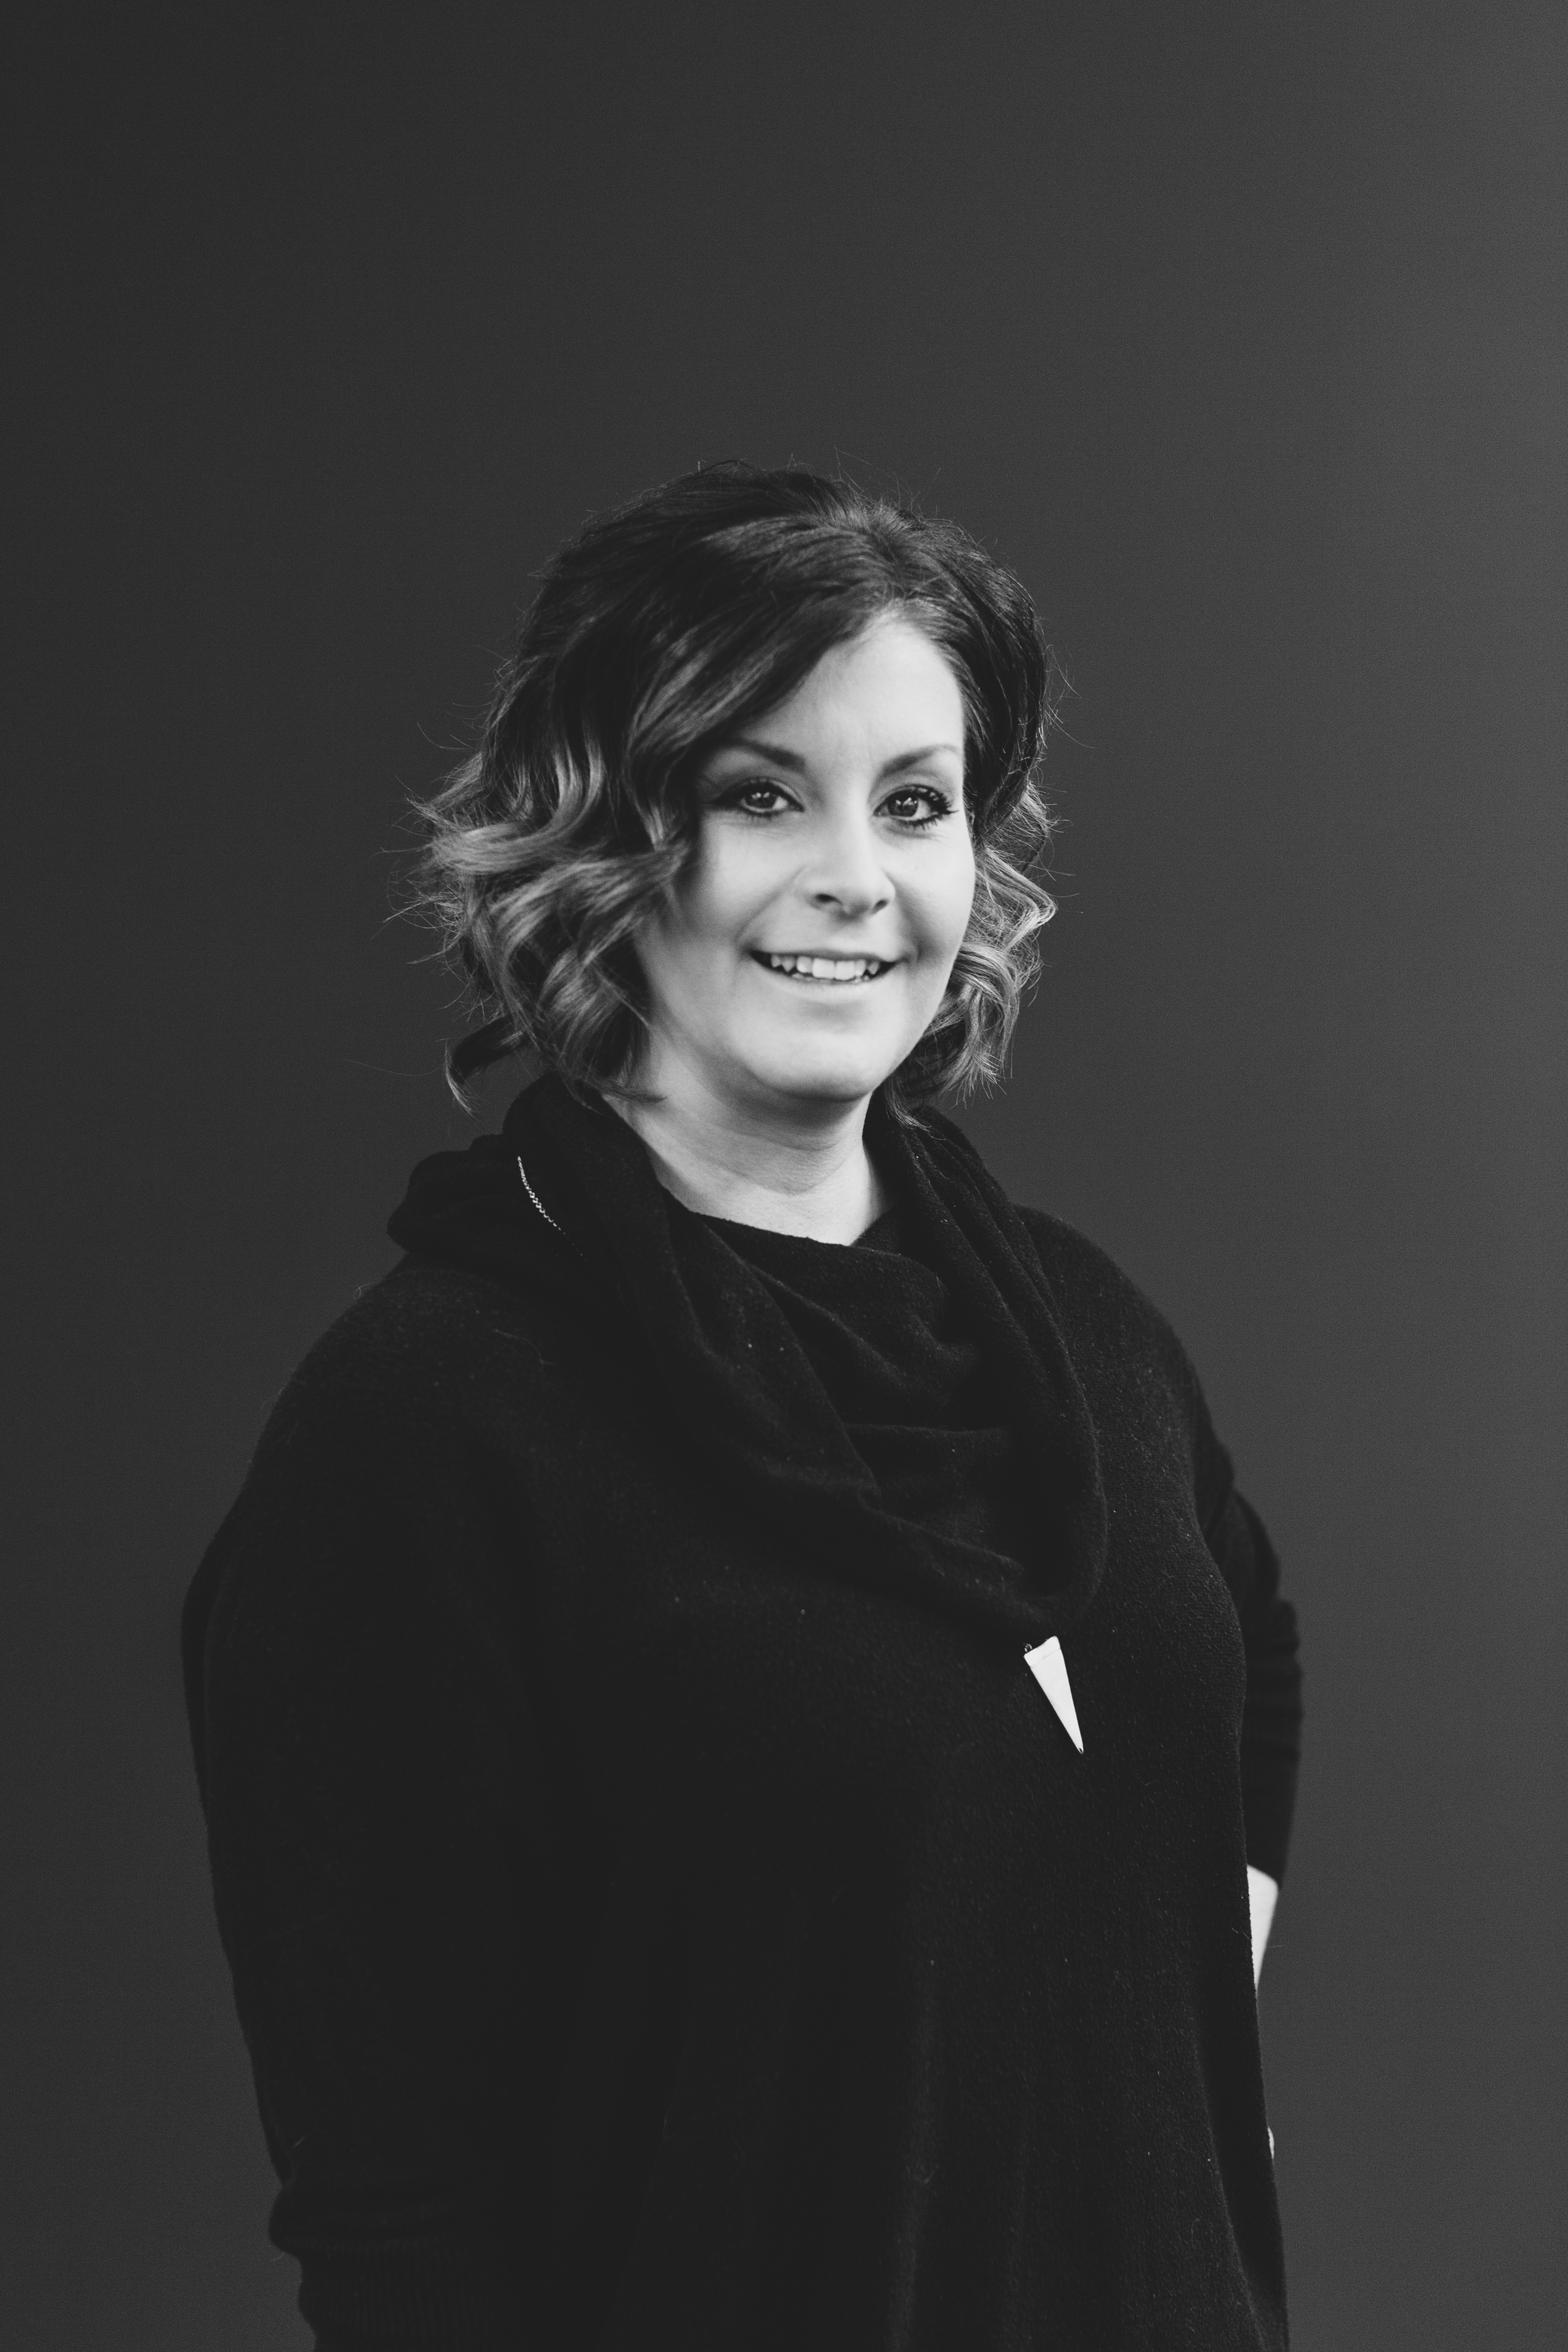 Tiffany is a talented and highly experienced stylist. Her work has been published in Canadian Hairdresser Magazine;she has traveled to America's largest hair shows continuing her education and finding new inspiration for her work. She is famous for her broad talents working with blondes.